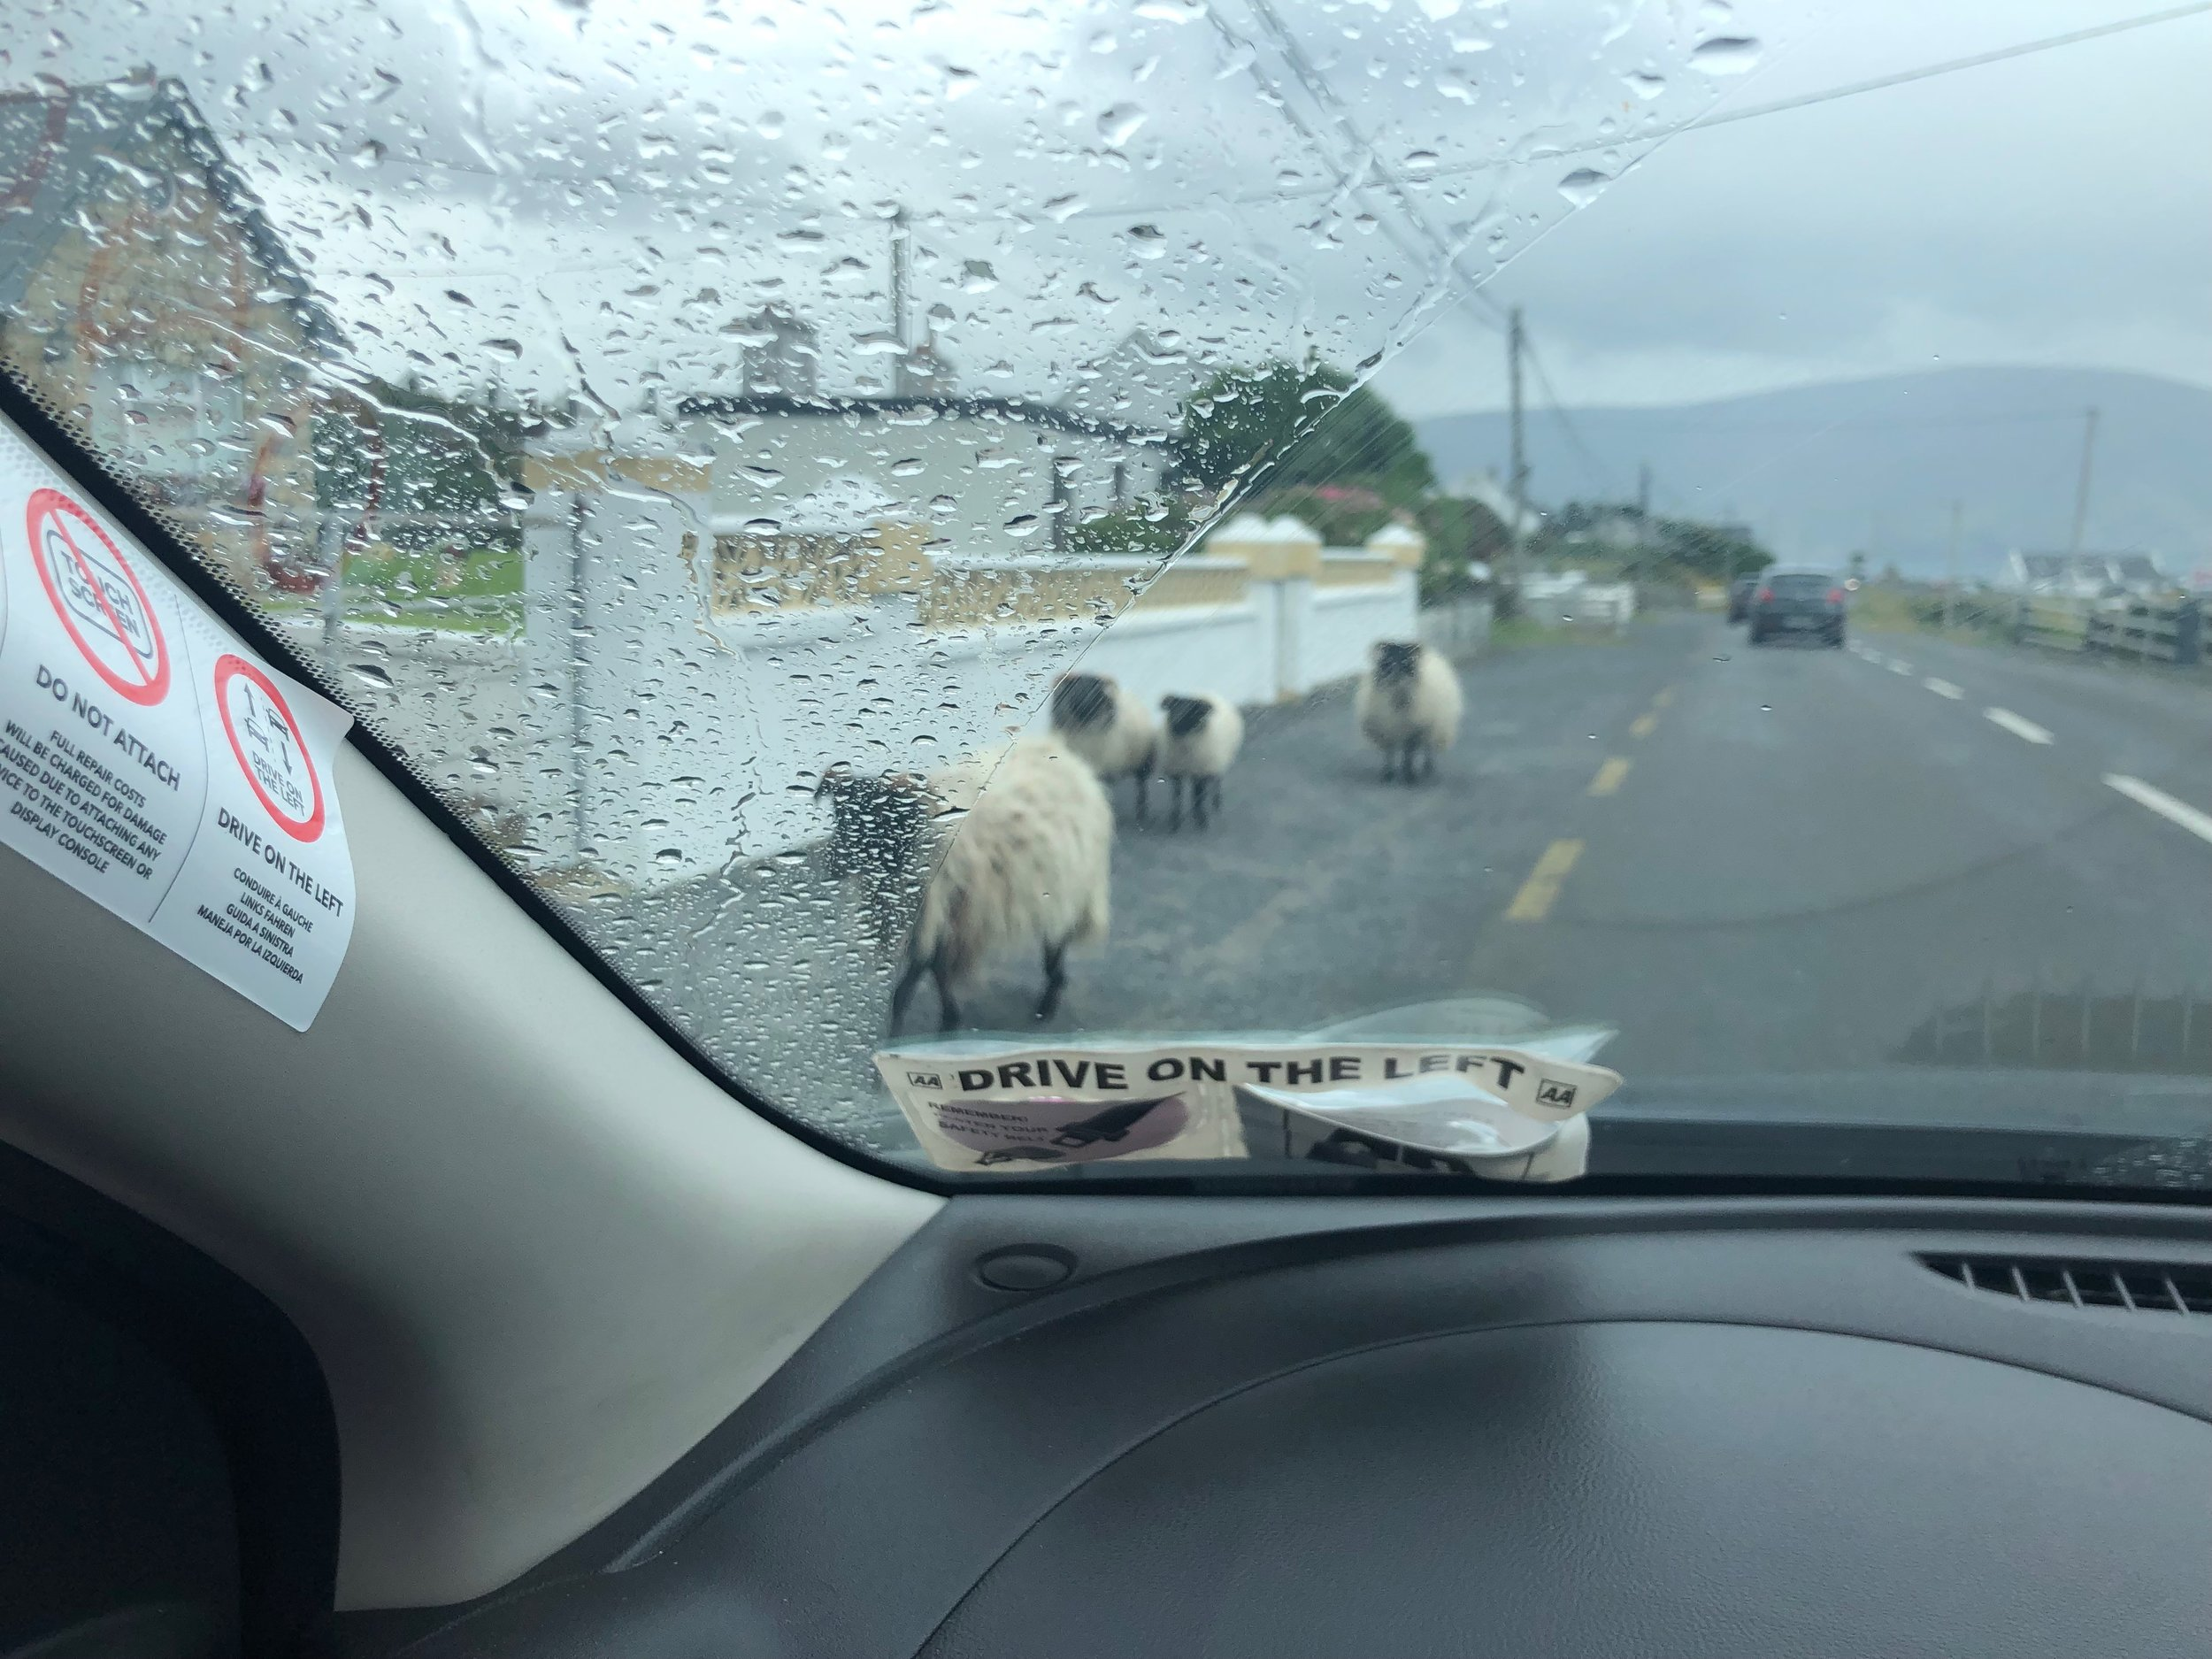 Sheep are everywhere in Ireland, and they don't seem to have any fear of cars. Several times we encountered sheep like these walking alongside the road.